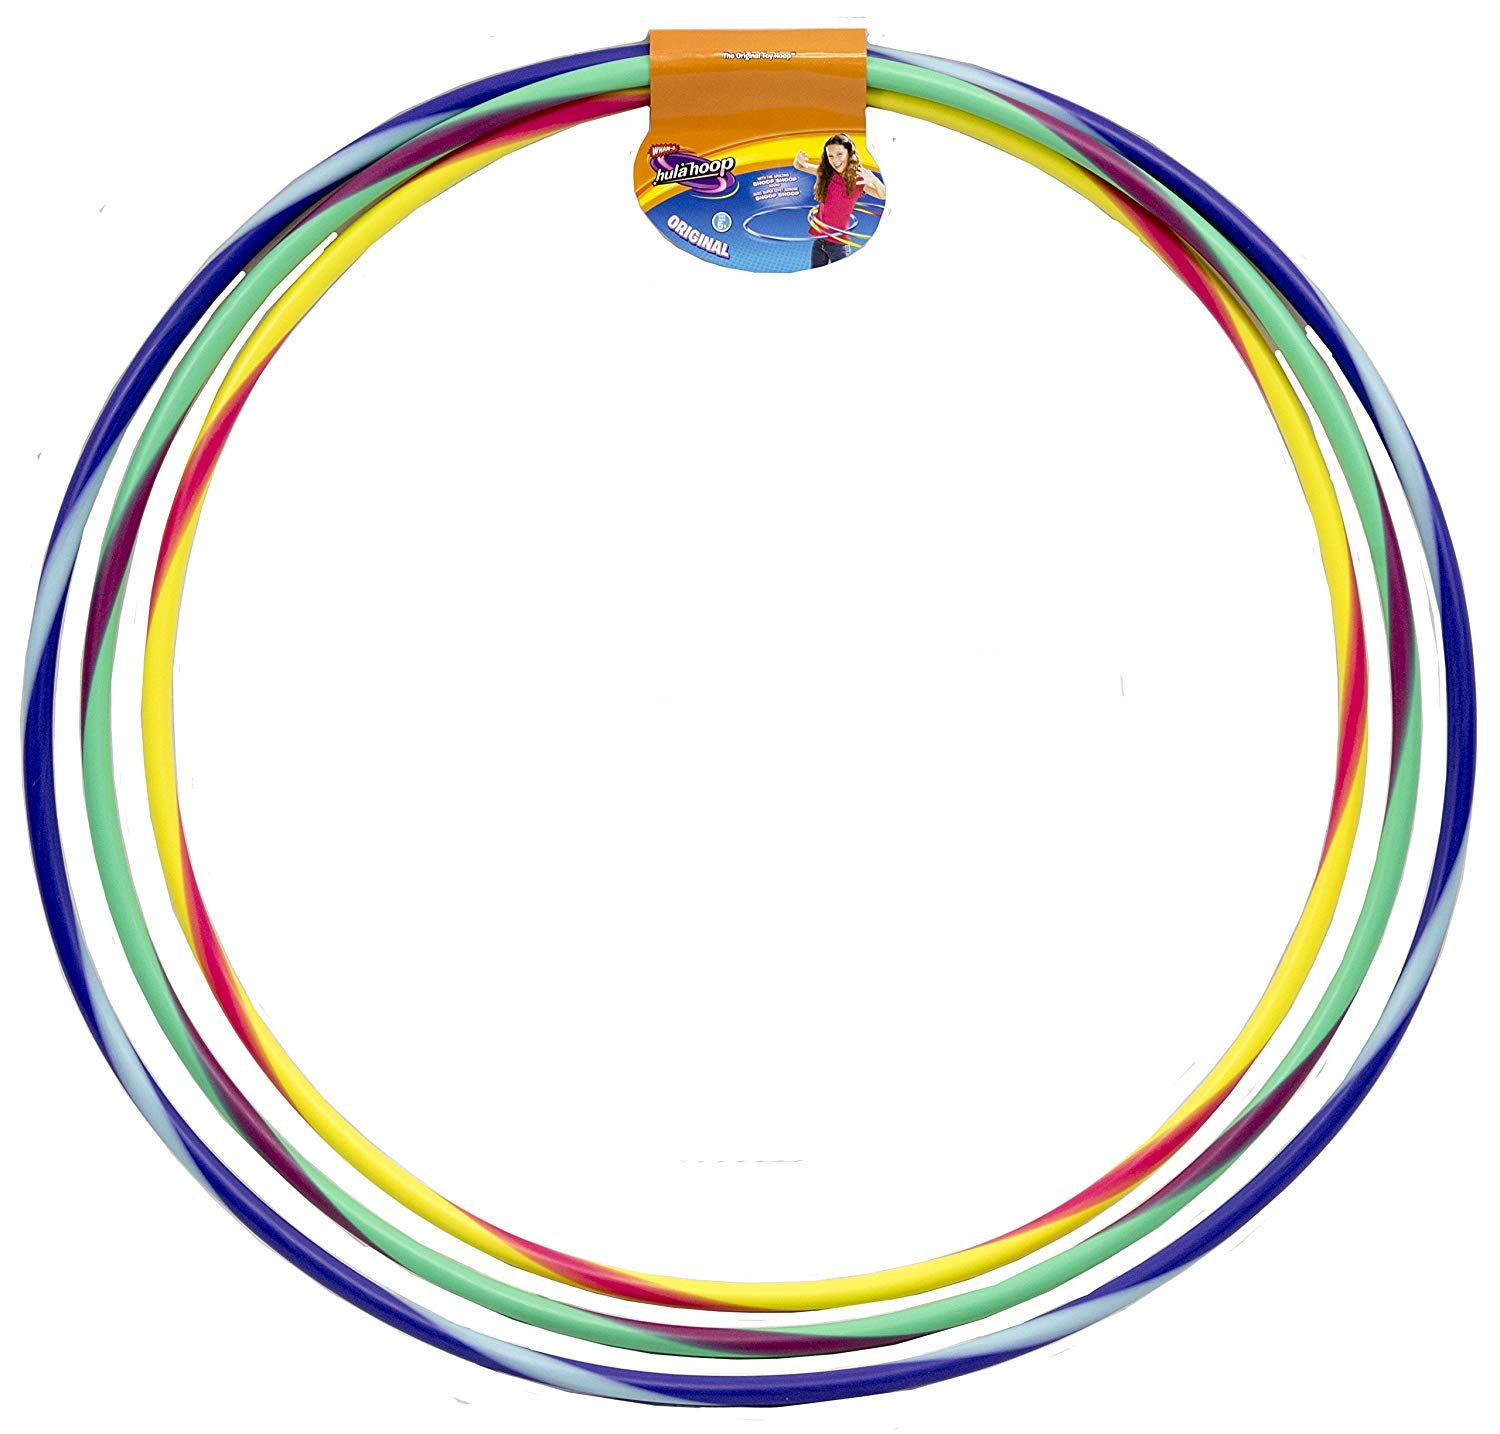 Wham-O Original Assorted Colors and Sizes Hula Hoop Set with plastic bearings by Wham-O